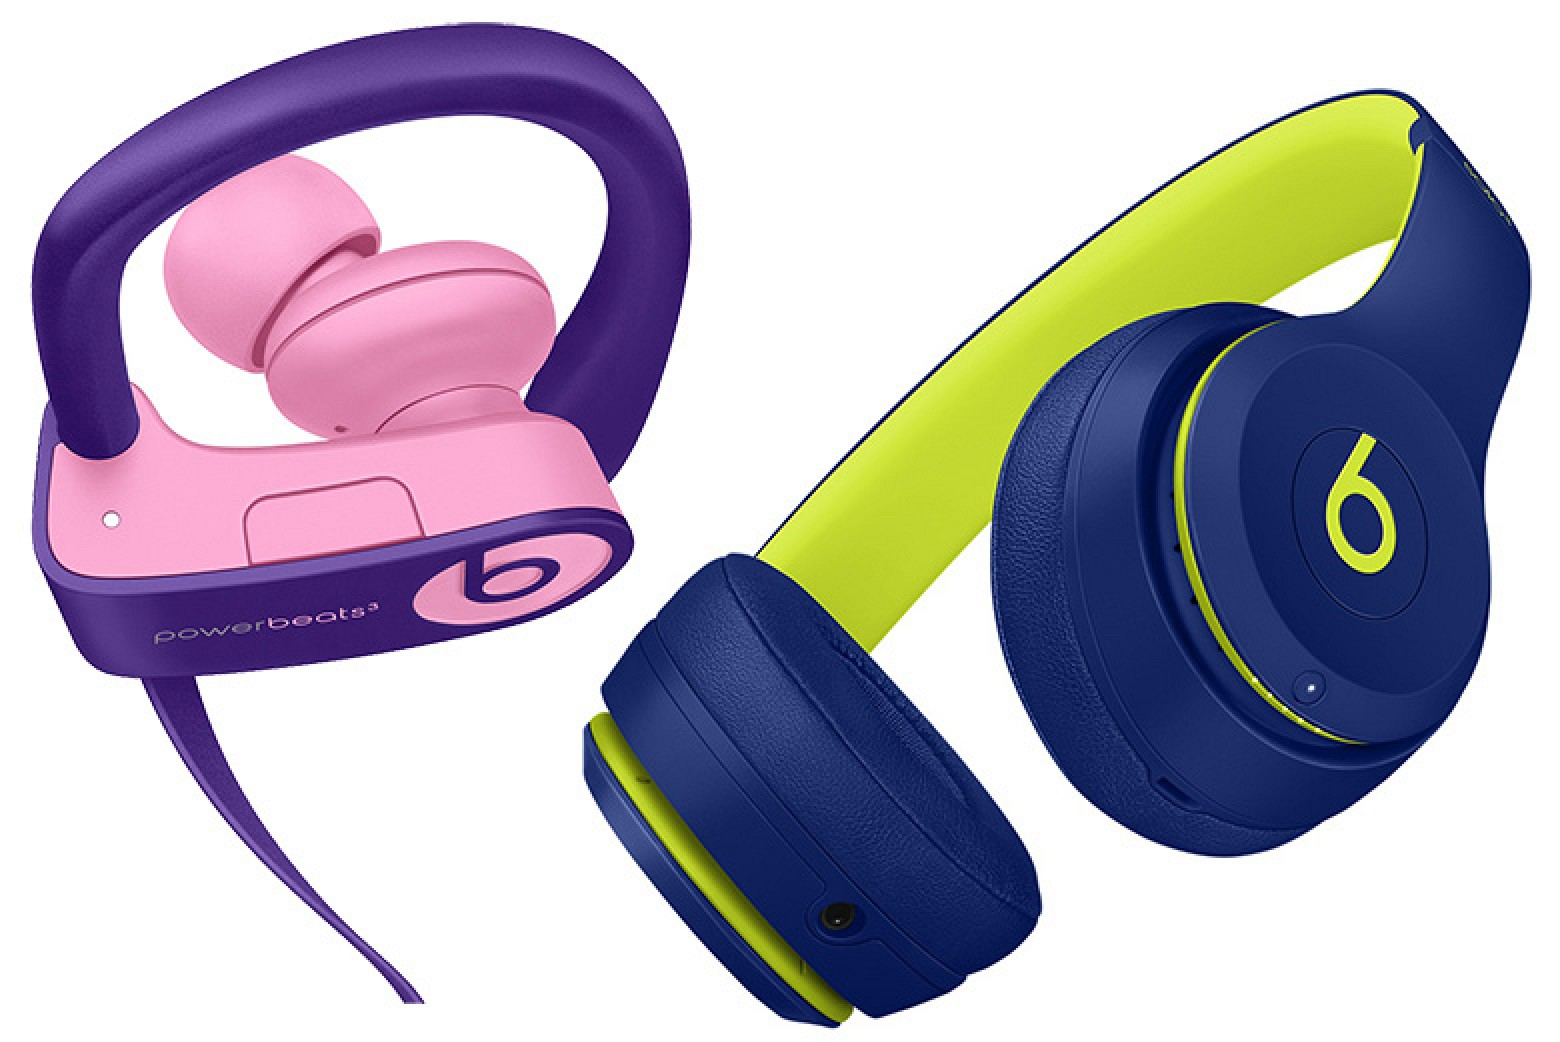 official photos b06f3 d9319 Beats Solo3 and Powerbeats3 Wireless Headphones Get New Pop Collection of  Colors